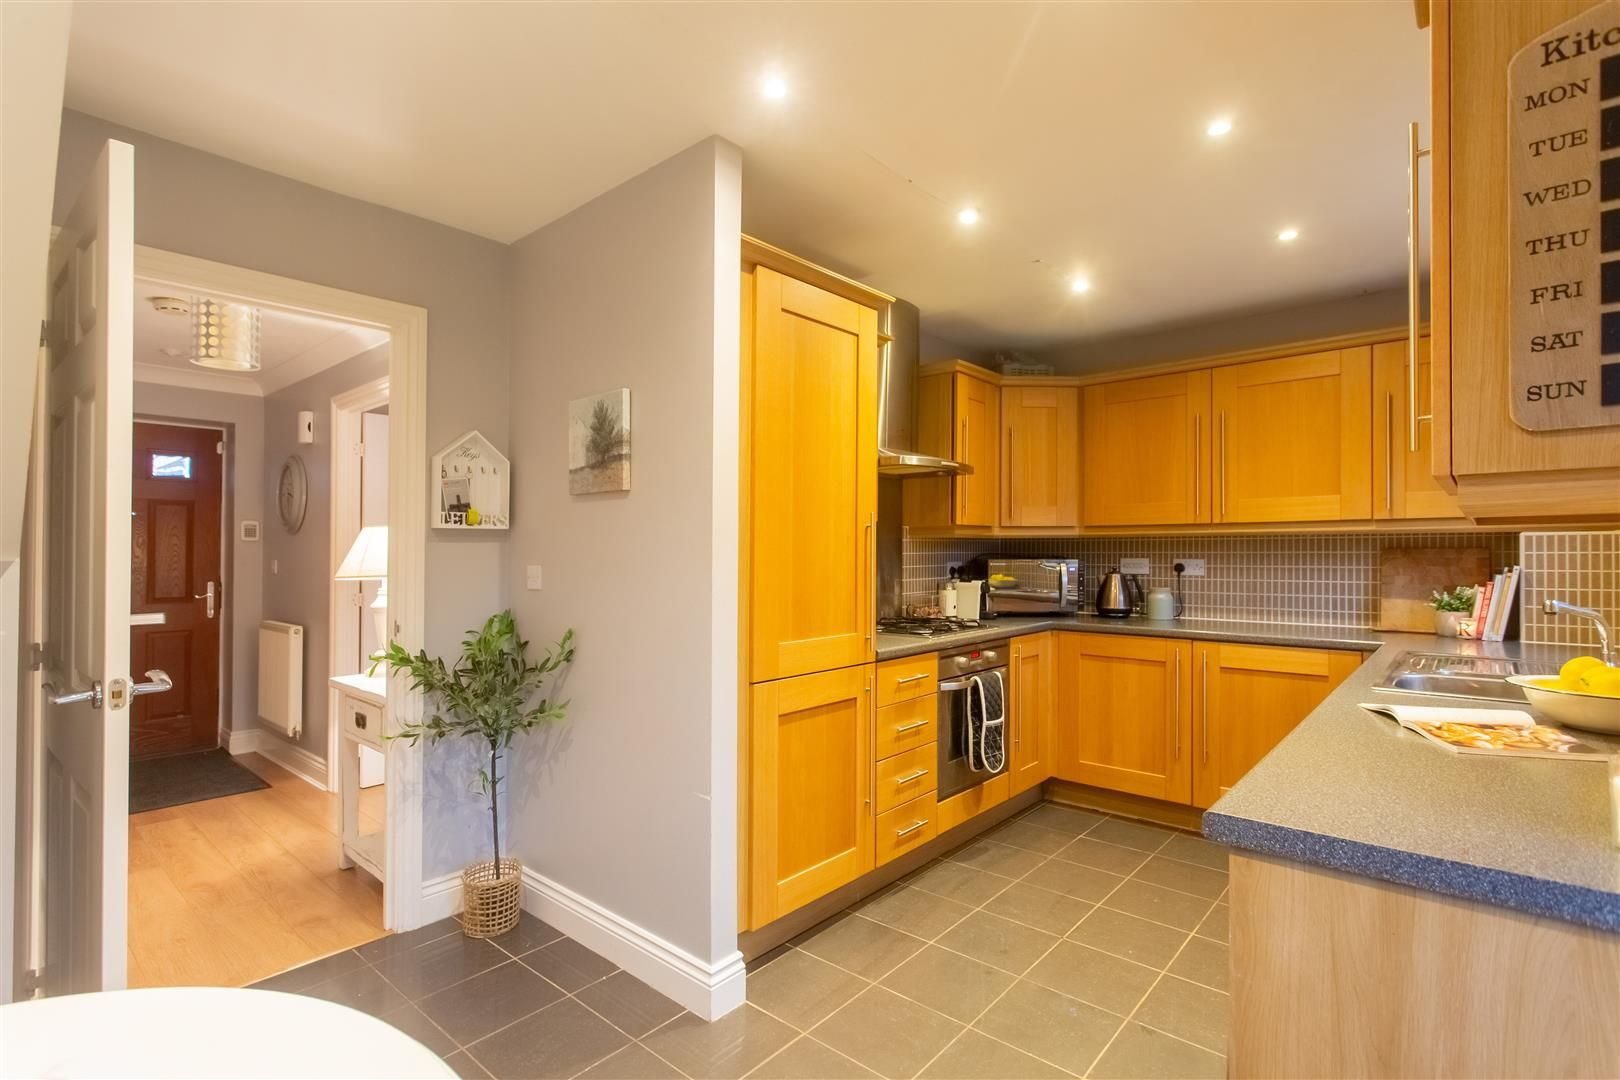 3 bed detached for sale in Hereford  - Property Image 5